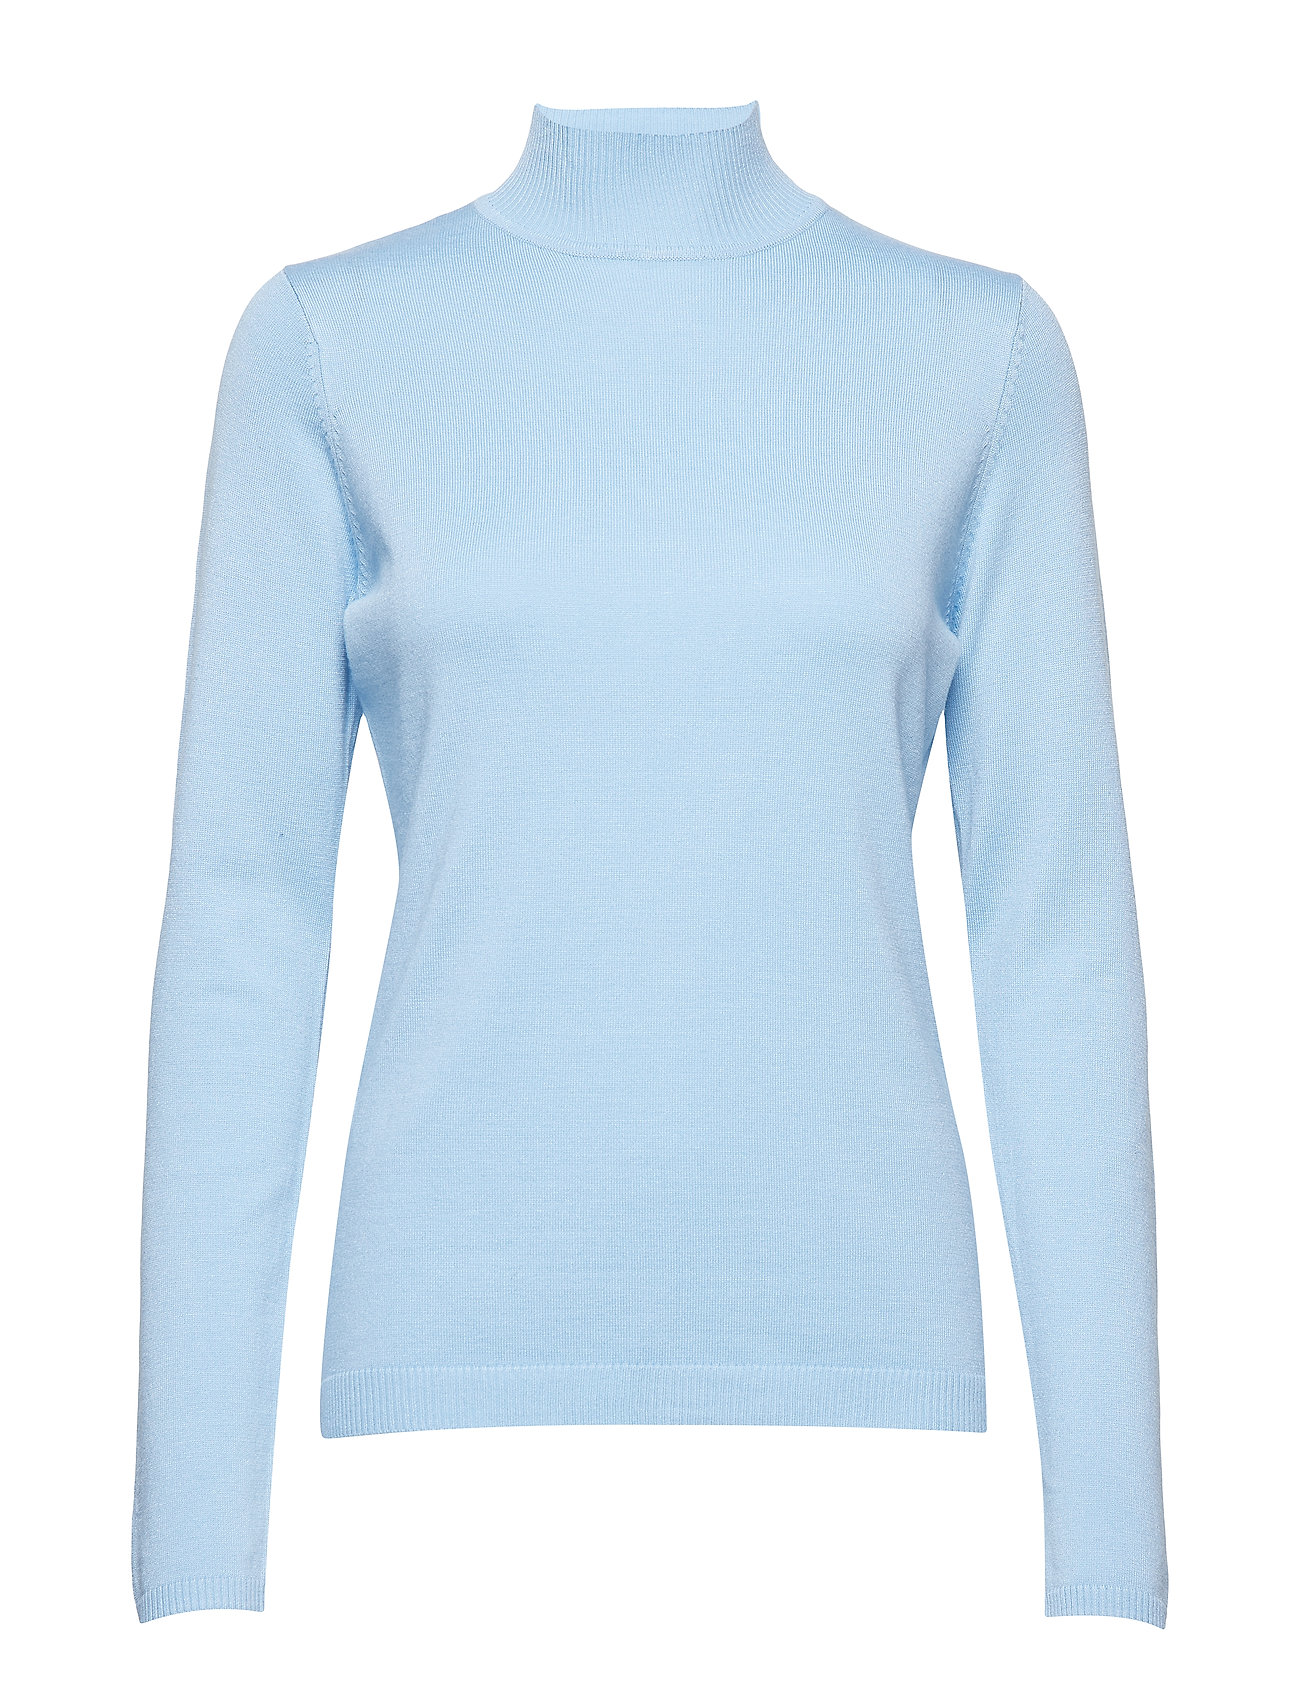 Minus Lana roll neck knit - ICY BLUE